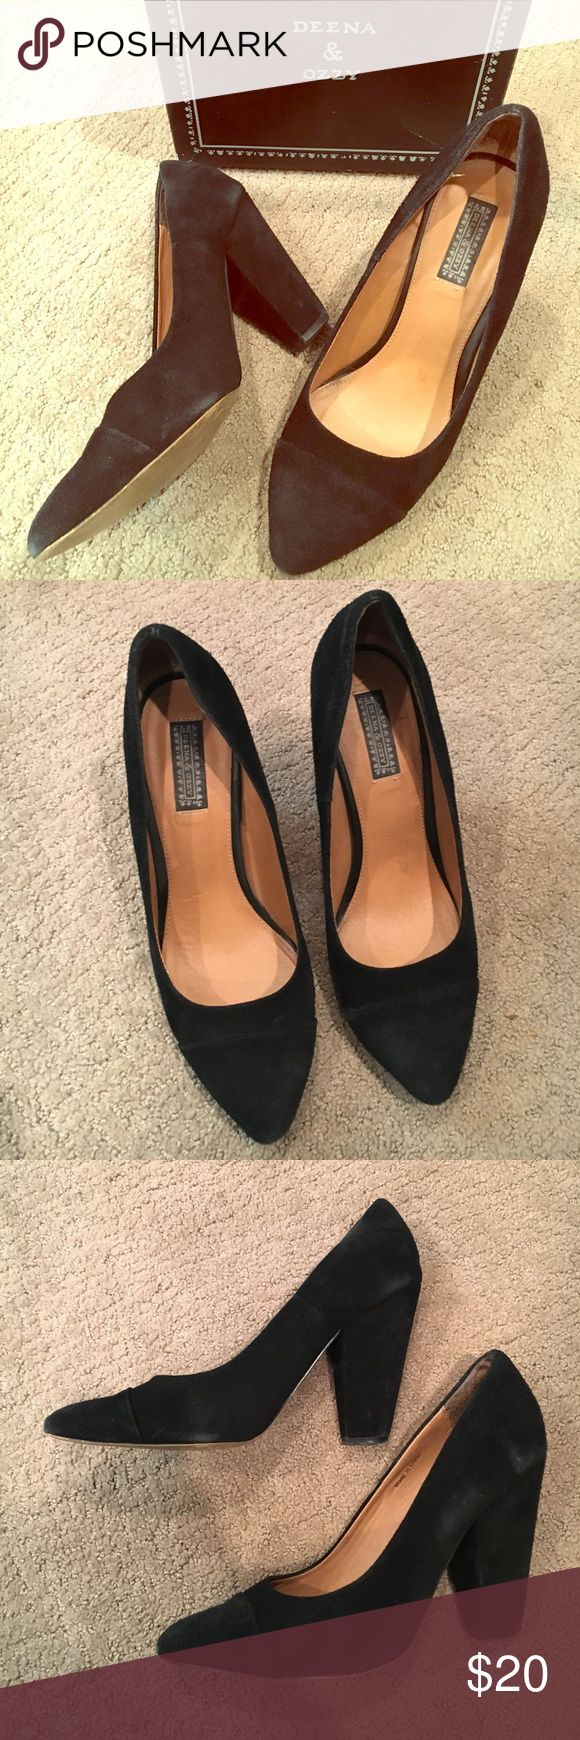 Deena & Ozzy Sexy Vintage Black Faux Suede Pumps Used - W/O tags. Purchased these via POSHMARK and was sad when I got them as my feet did not fit them (I am in between sizes). Item has been worn by previous buyer. Just looking to make my $$$ back on this item. Worn and used, with little wear visible in last photo - in great condition! Price negotiable. Just offer! Deena & Ozzy Shoes Heels